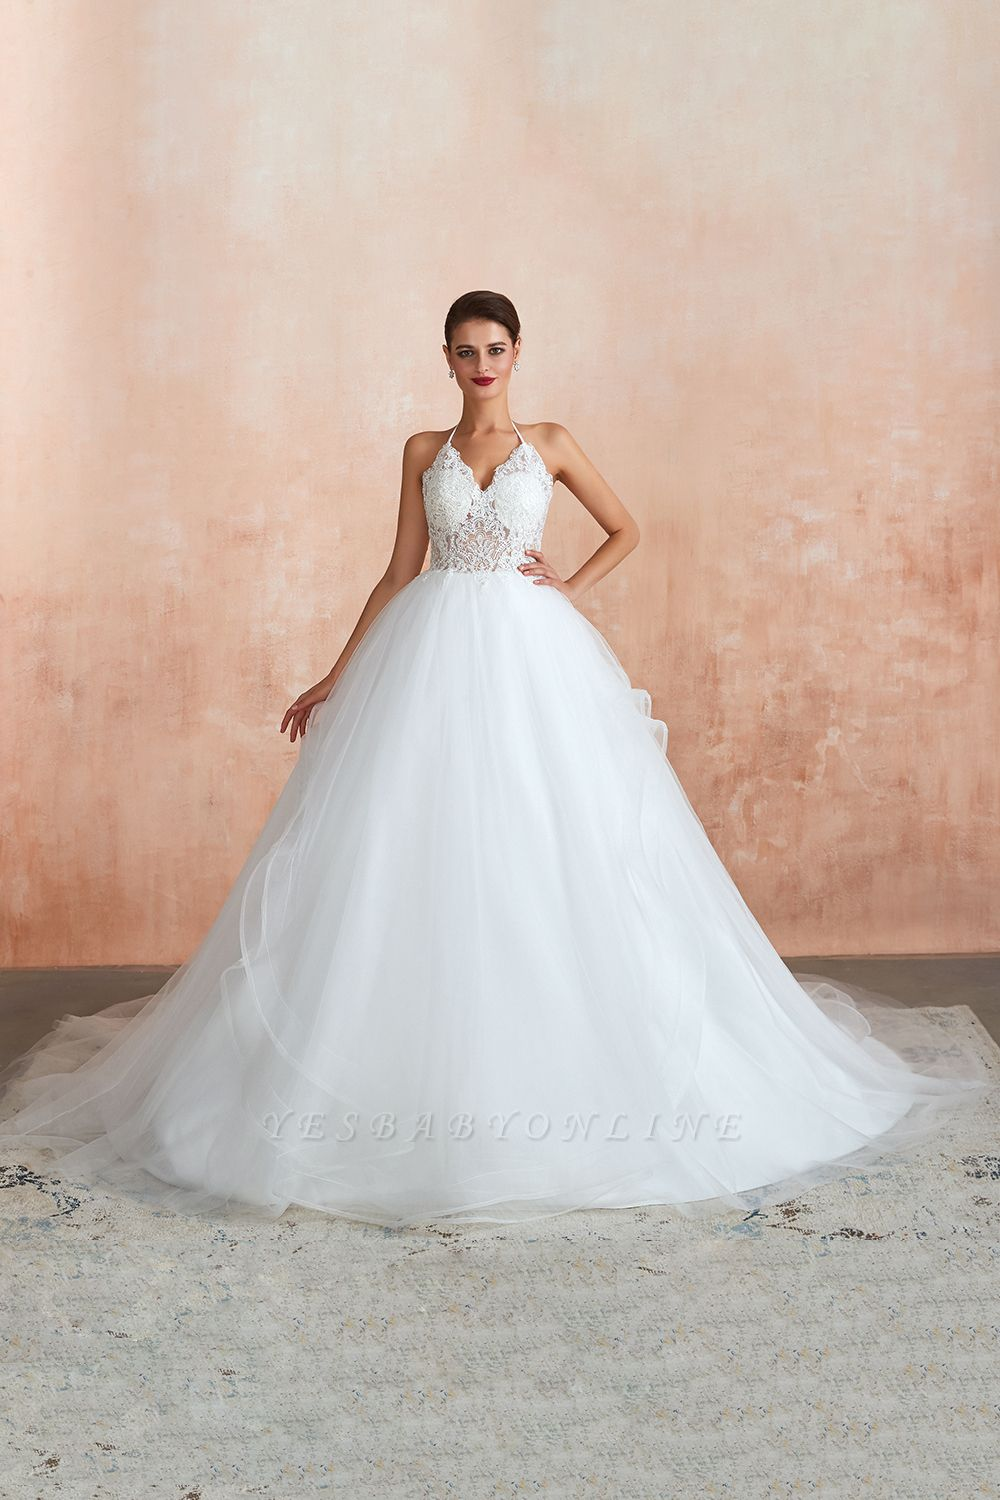 Halter Backless Ball Gown Wedding Dresses   Affordable Tulle Bridal Gowns